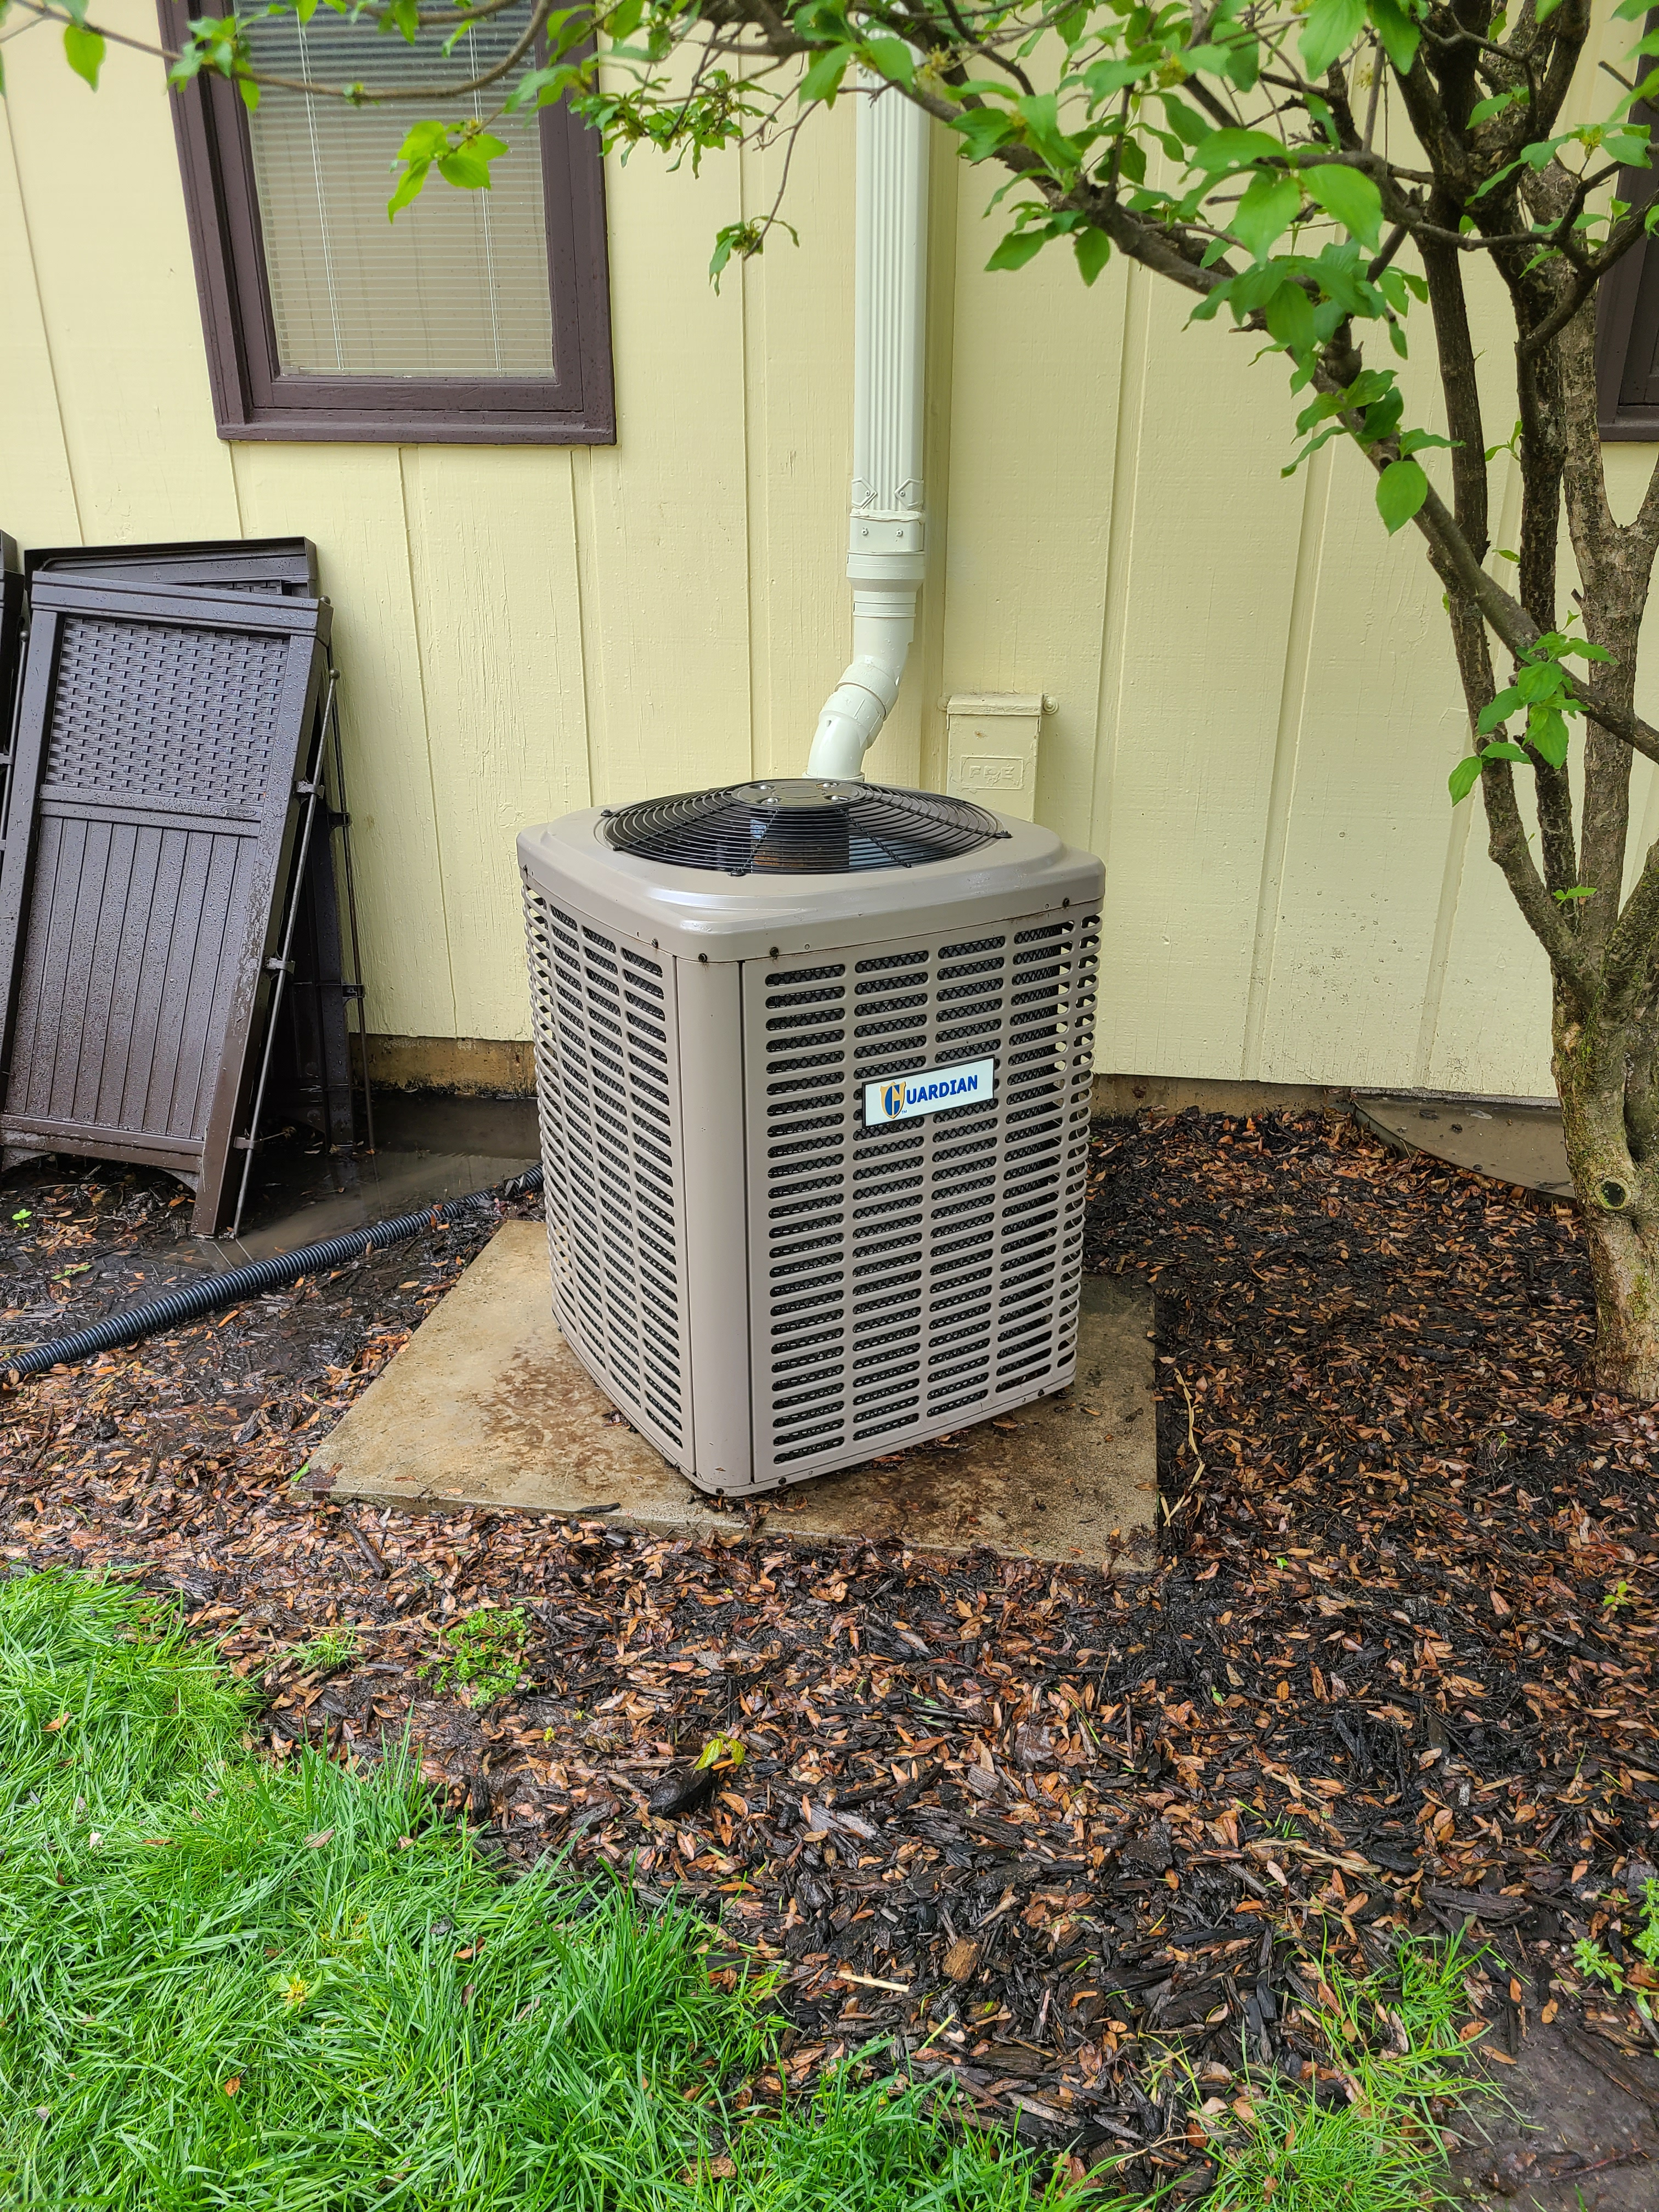 Make sure your Guardian air conditioner guards your home from the heat this summer.